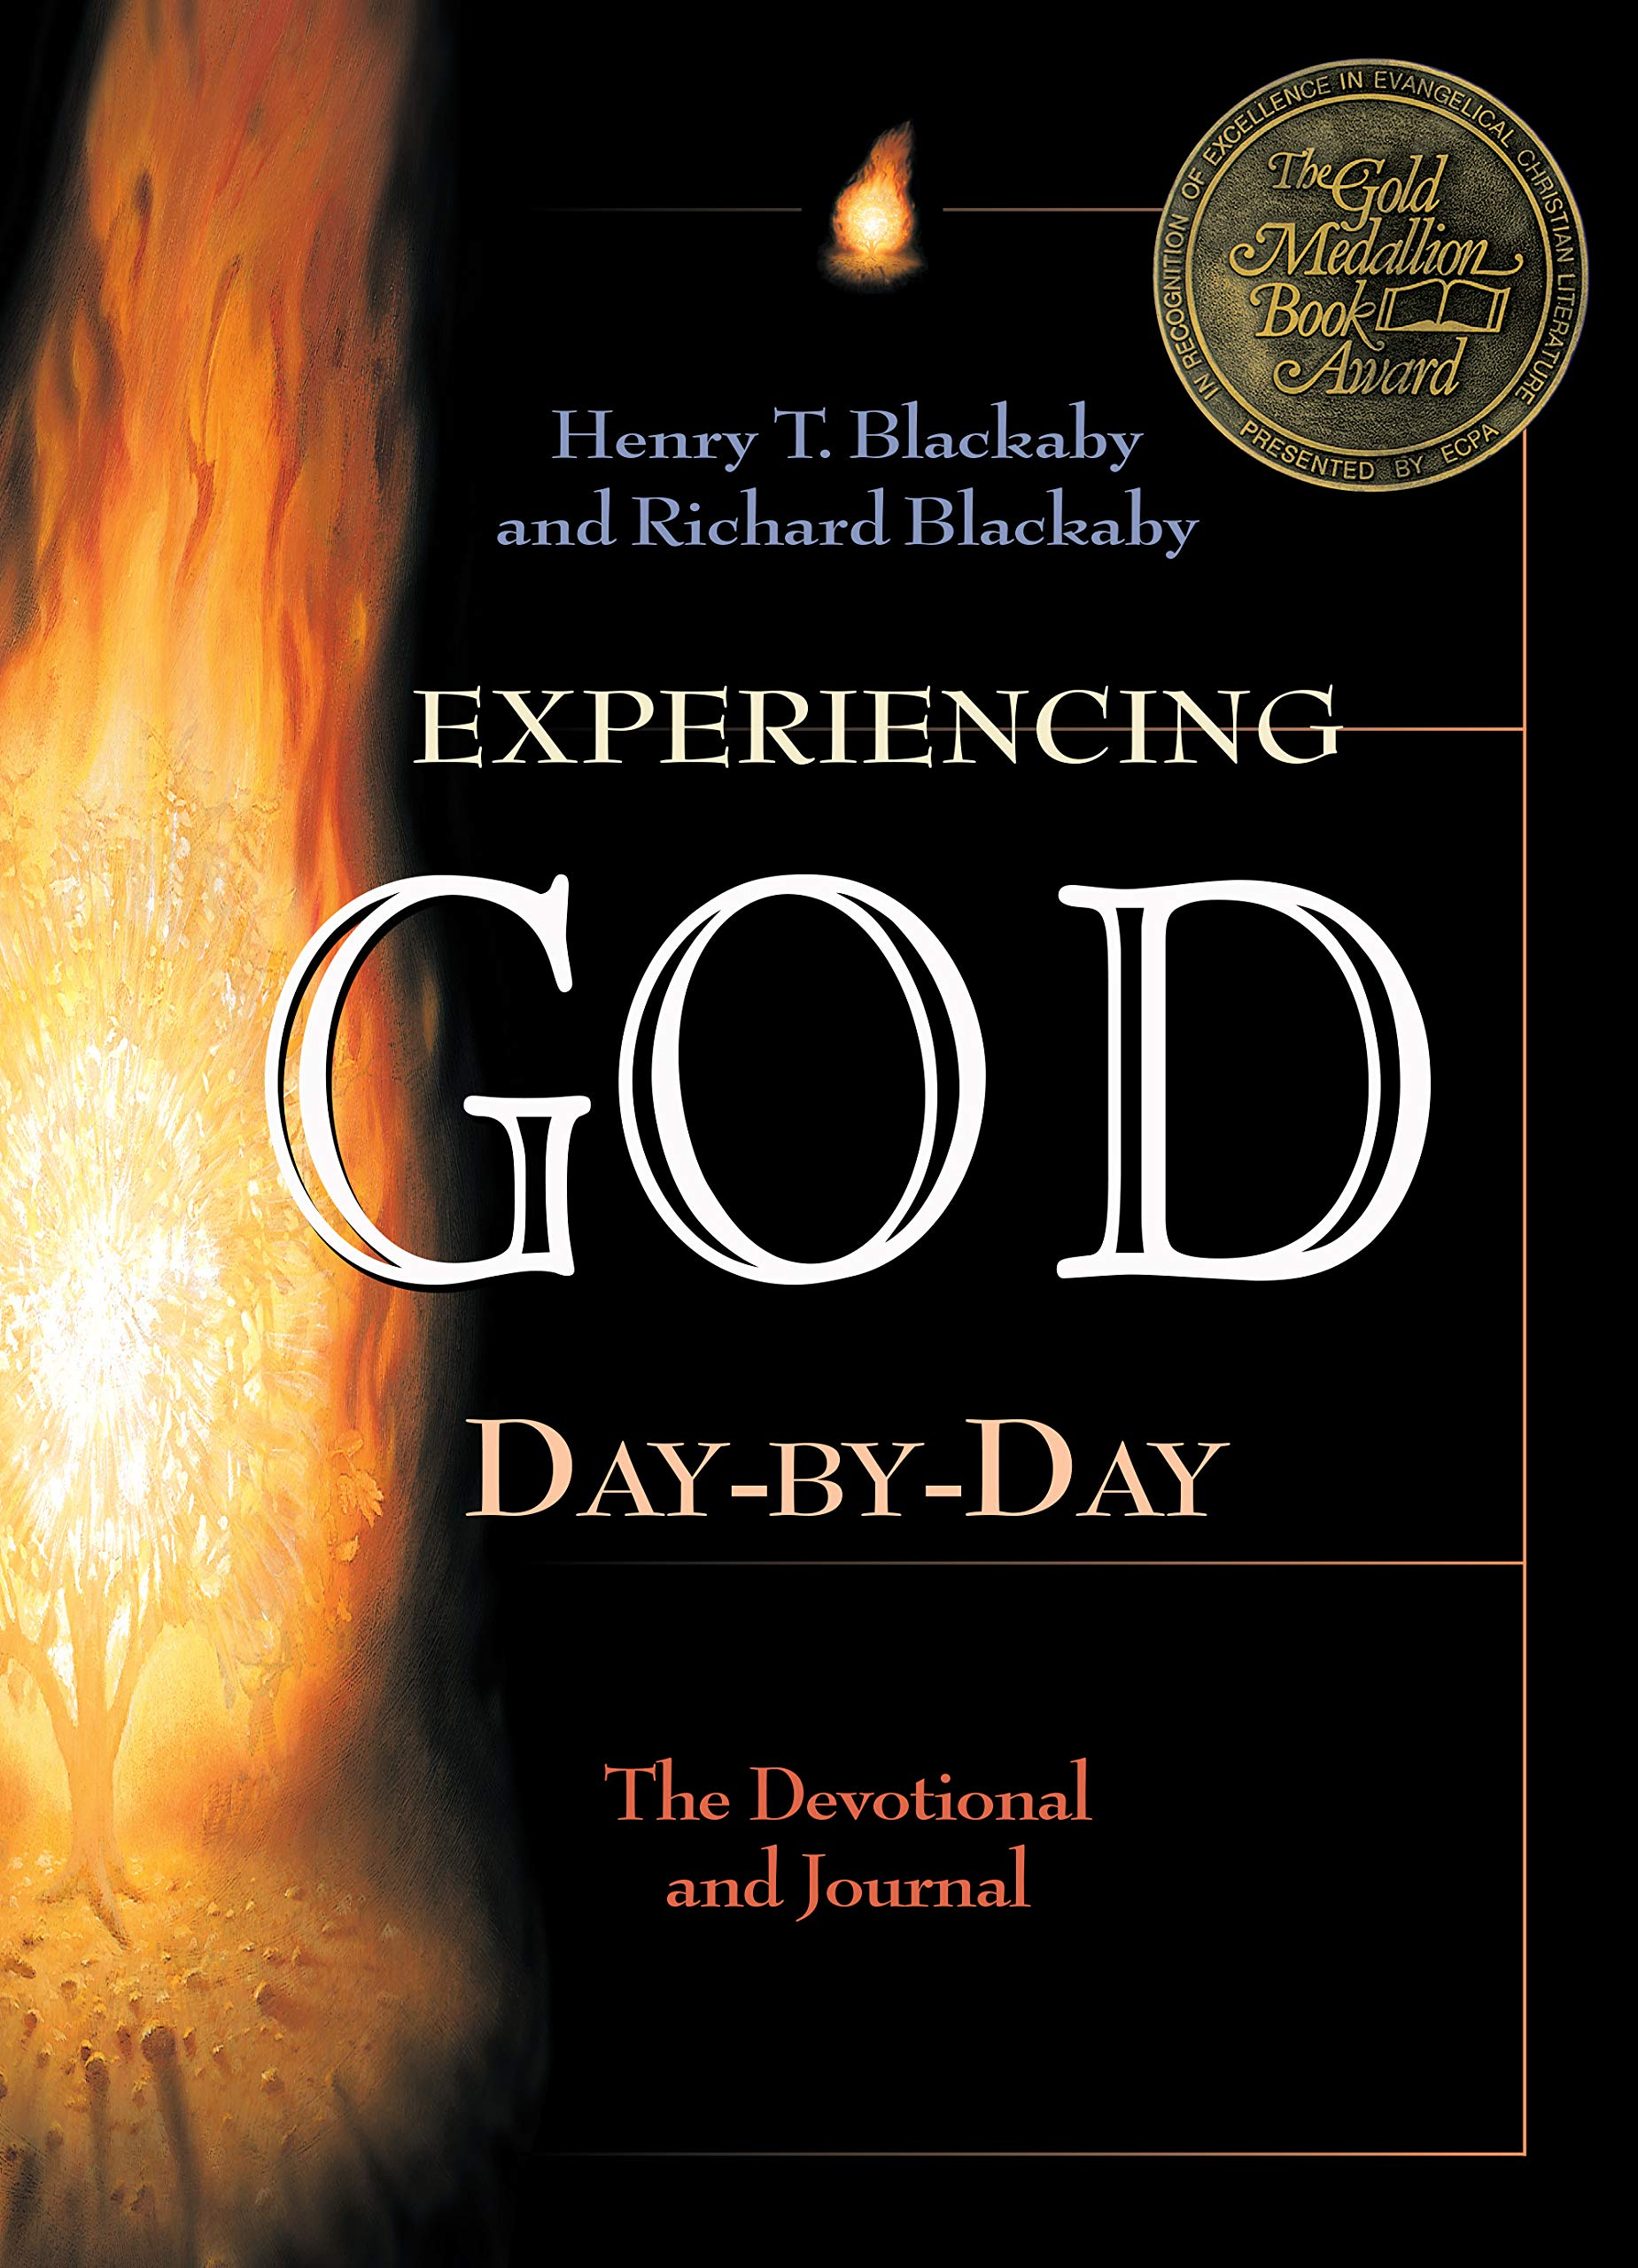 Experiencing God Day-By-Day: A Devotional and Journal: Henry T. Blackaby,  Richard Blackaby: 9780805462982: Amazon.com: Books